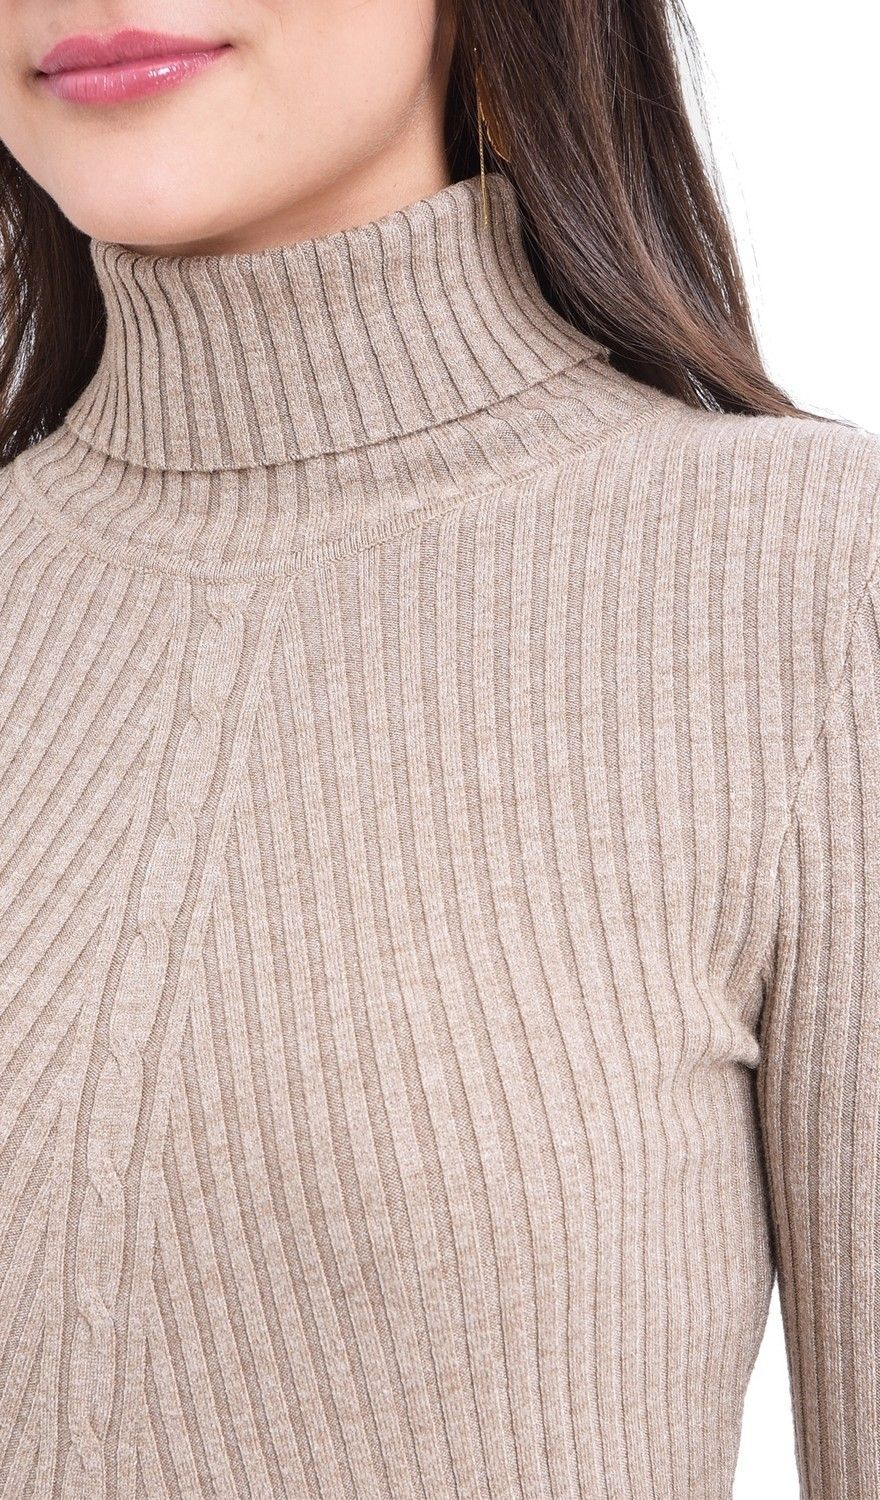 Assuili Turtleneck Twisted Yarn Front Sweater in Beige